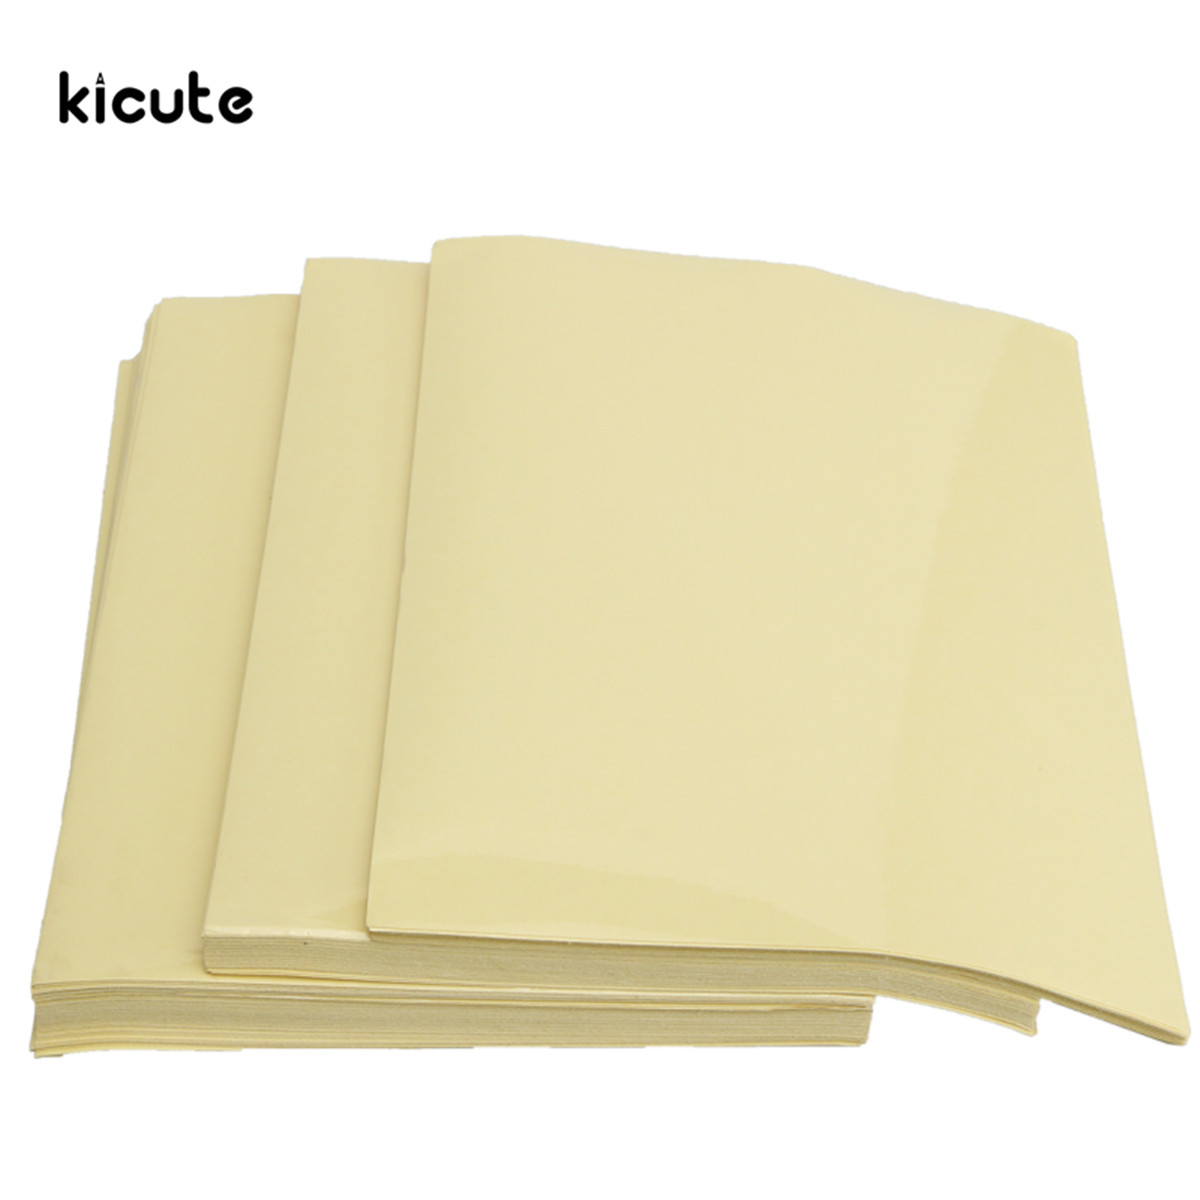 KICUTE 30/50/100Pcs A4 Clear Transparent Self Adhesive Printing Sticker Paper Sheet For Laser Printing Paper Print sticker kicute 70sheets pack self adhesive blank label paper price sticker stationery mark sticker for office stores libraries supplies